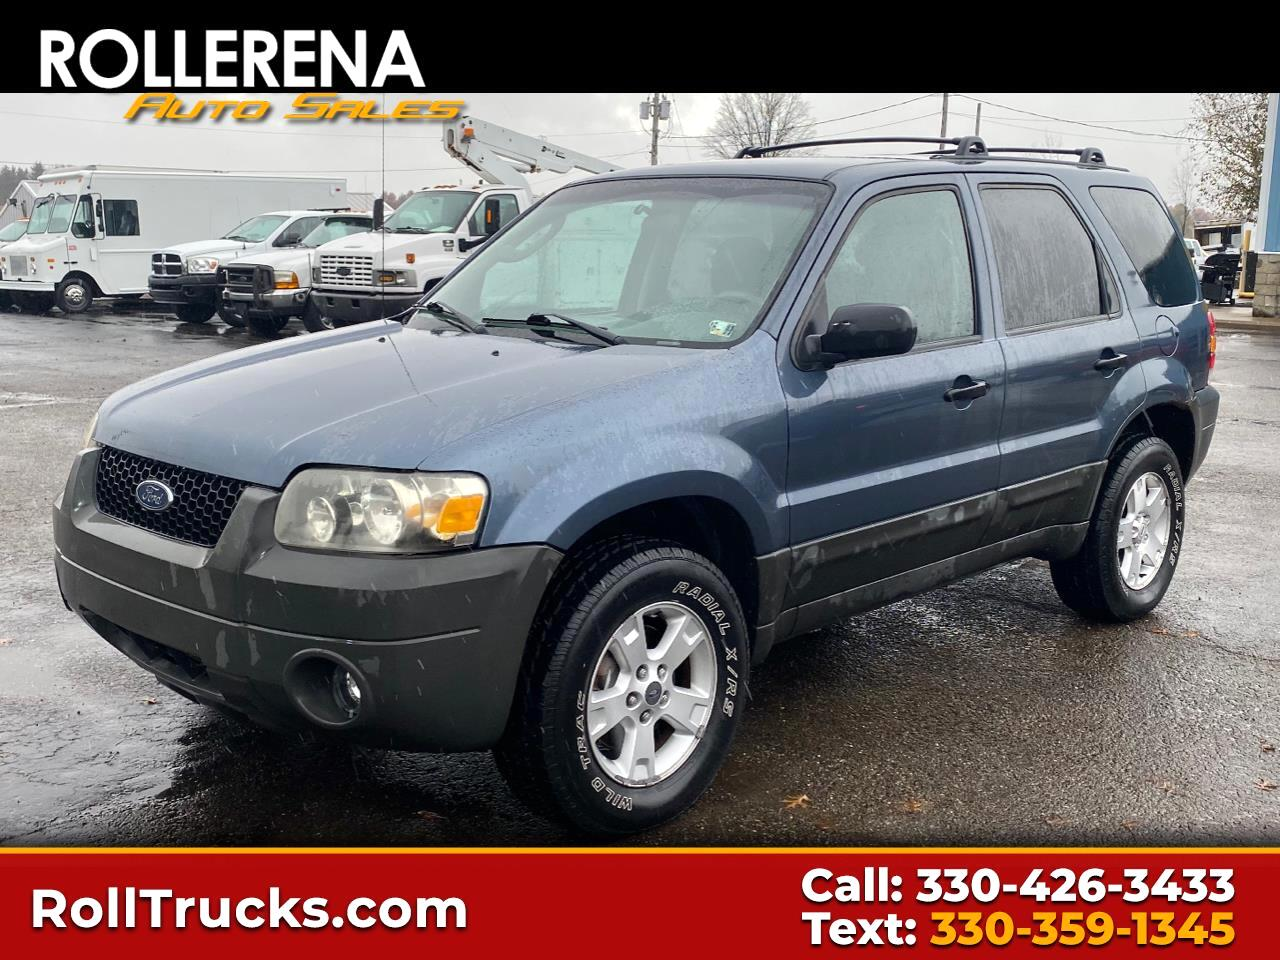 2005 Ford Escape SUV 4WD